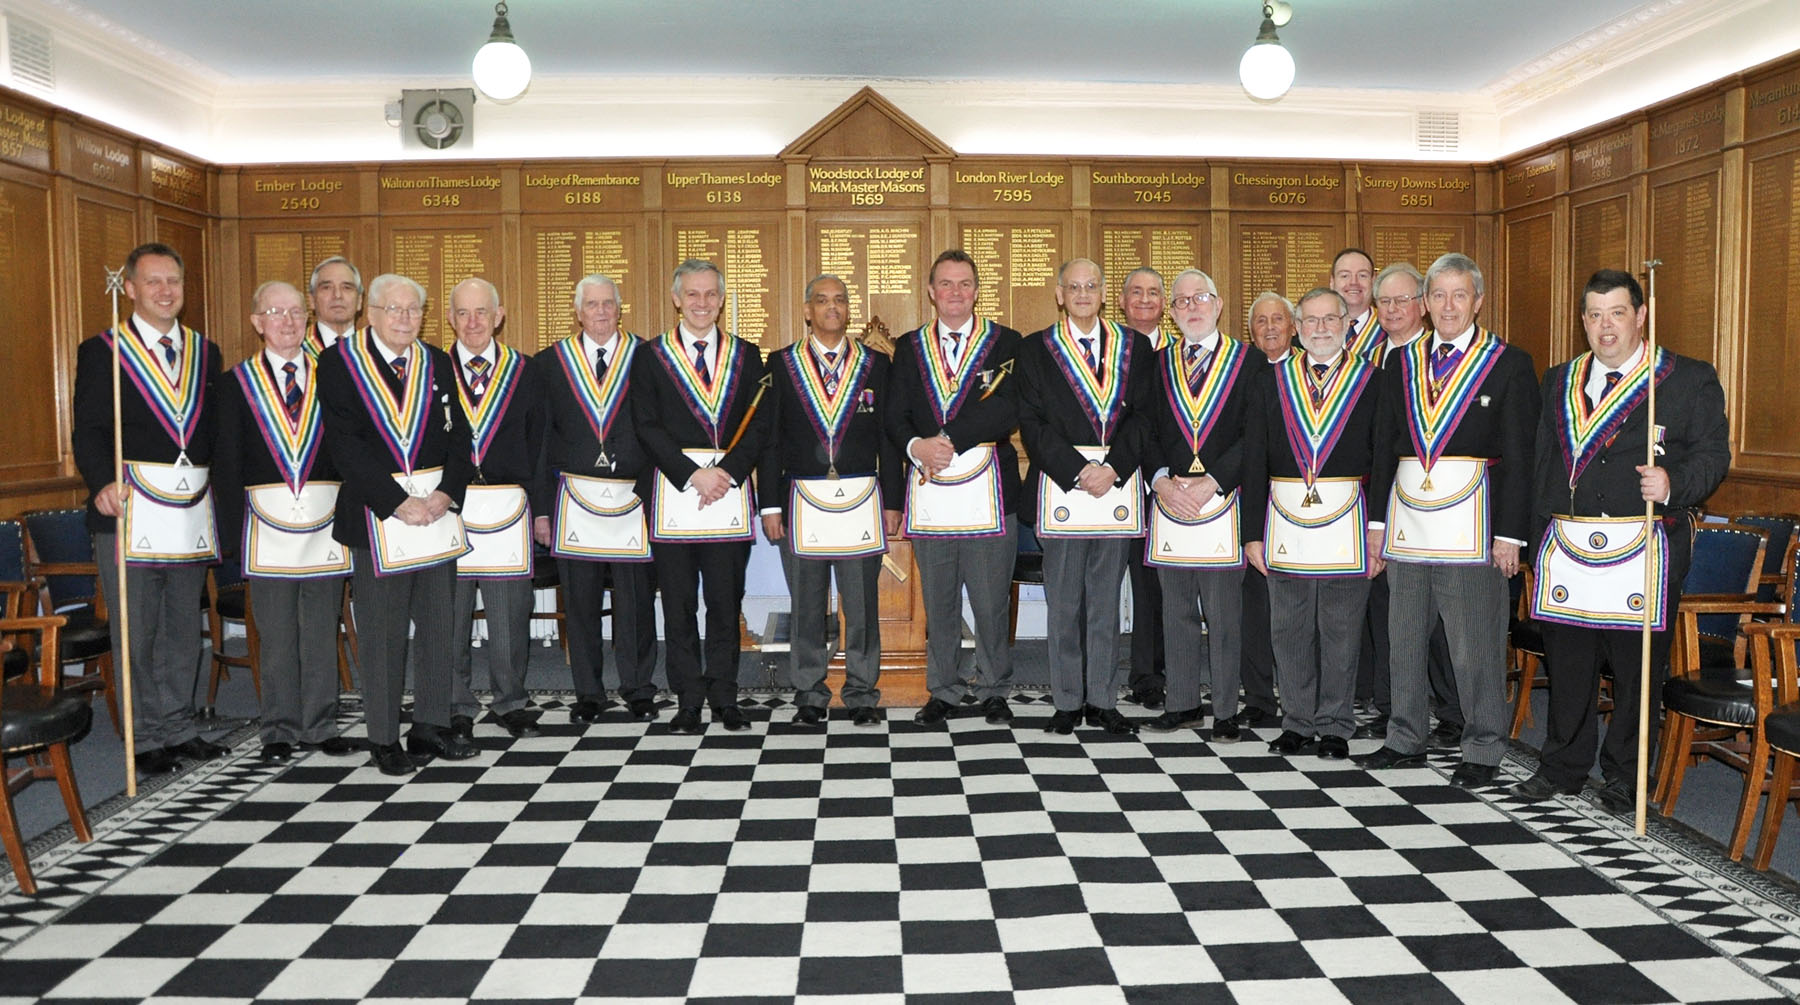 An official visit to Richmond Lodge of Royal Ark Mariners